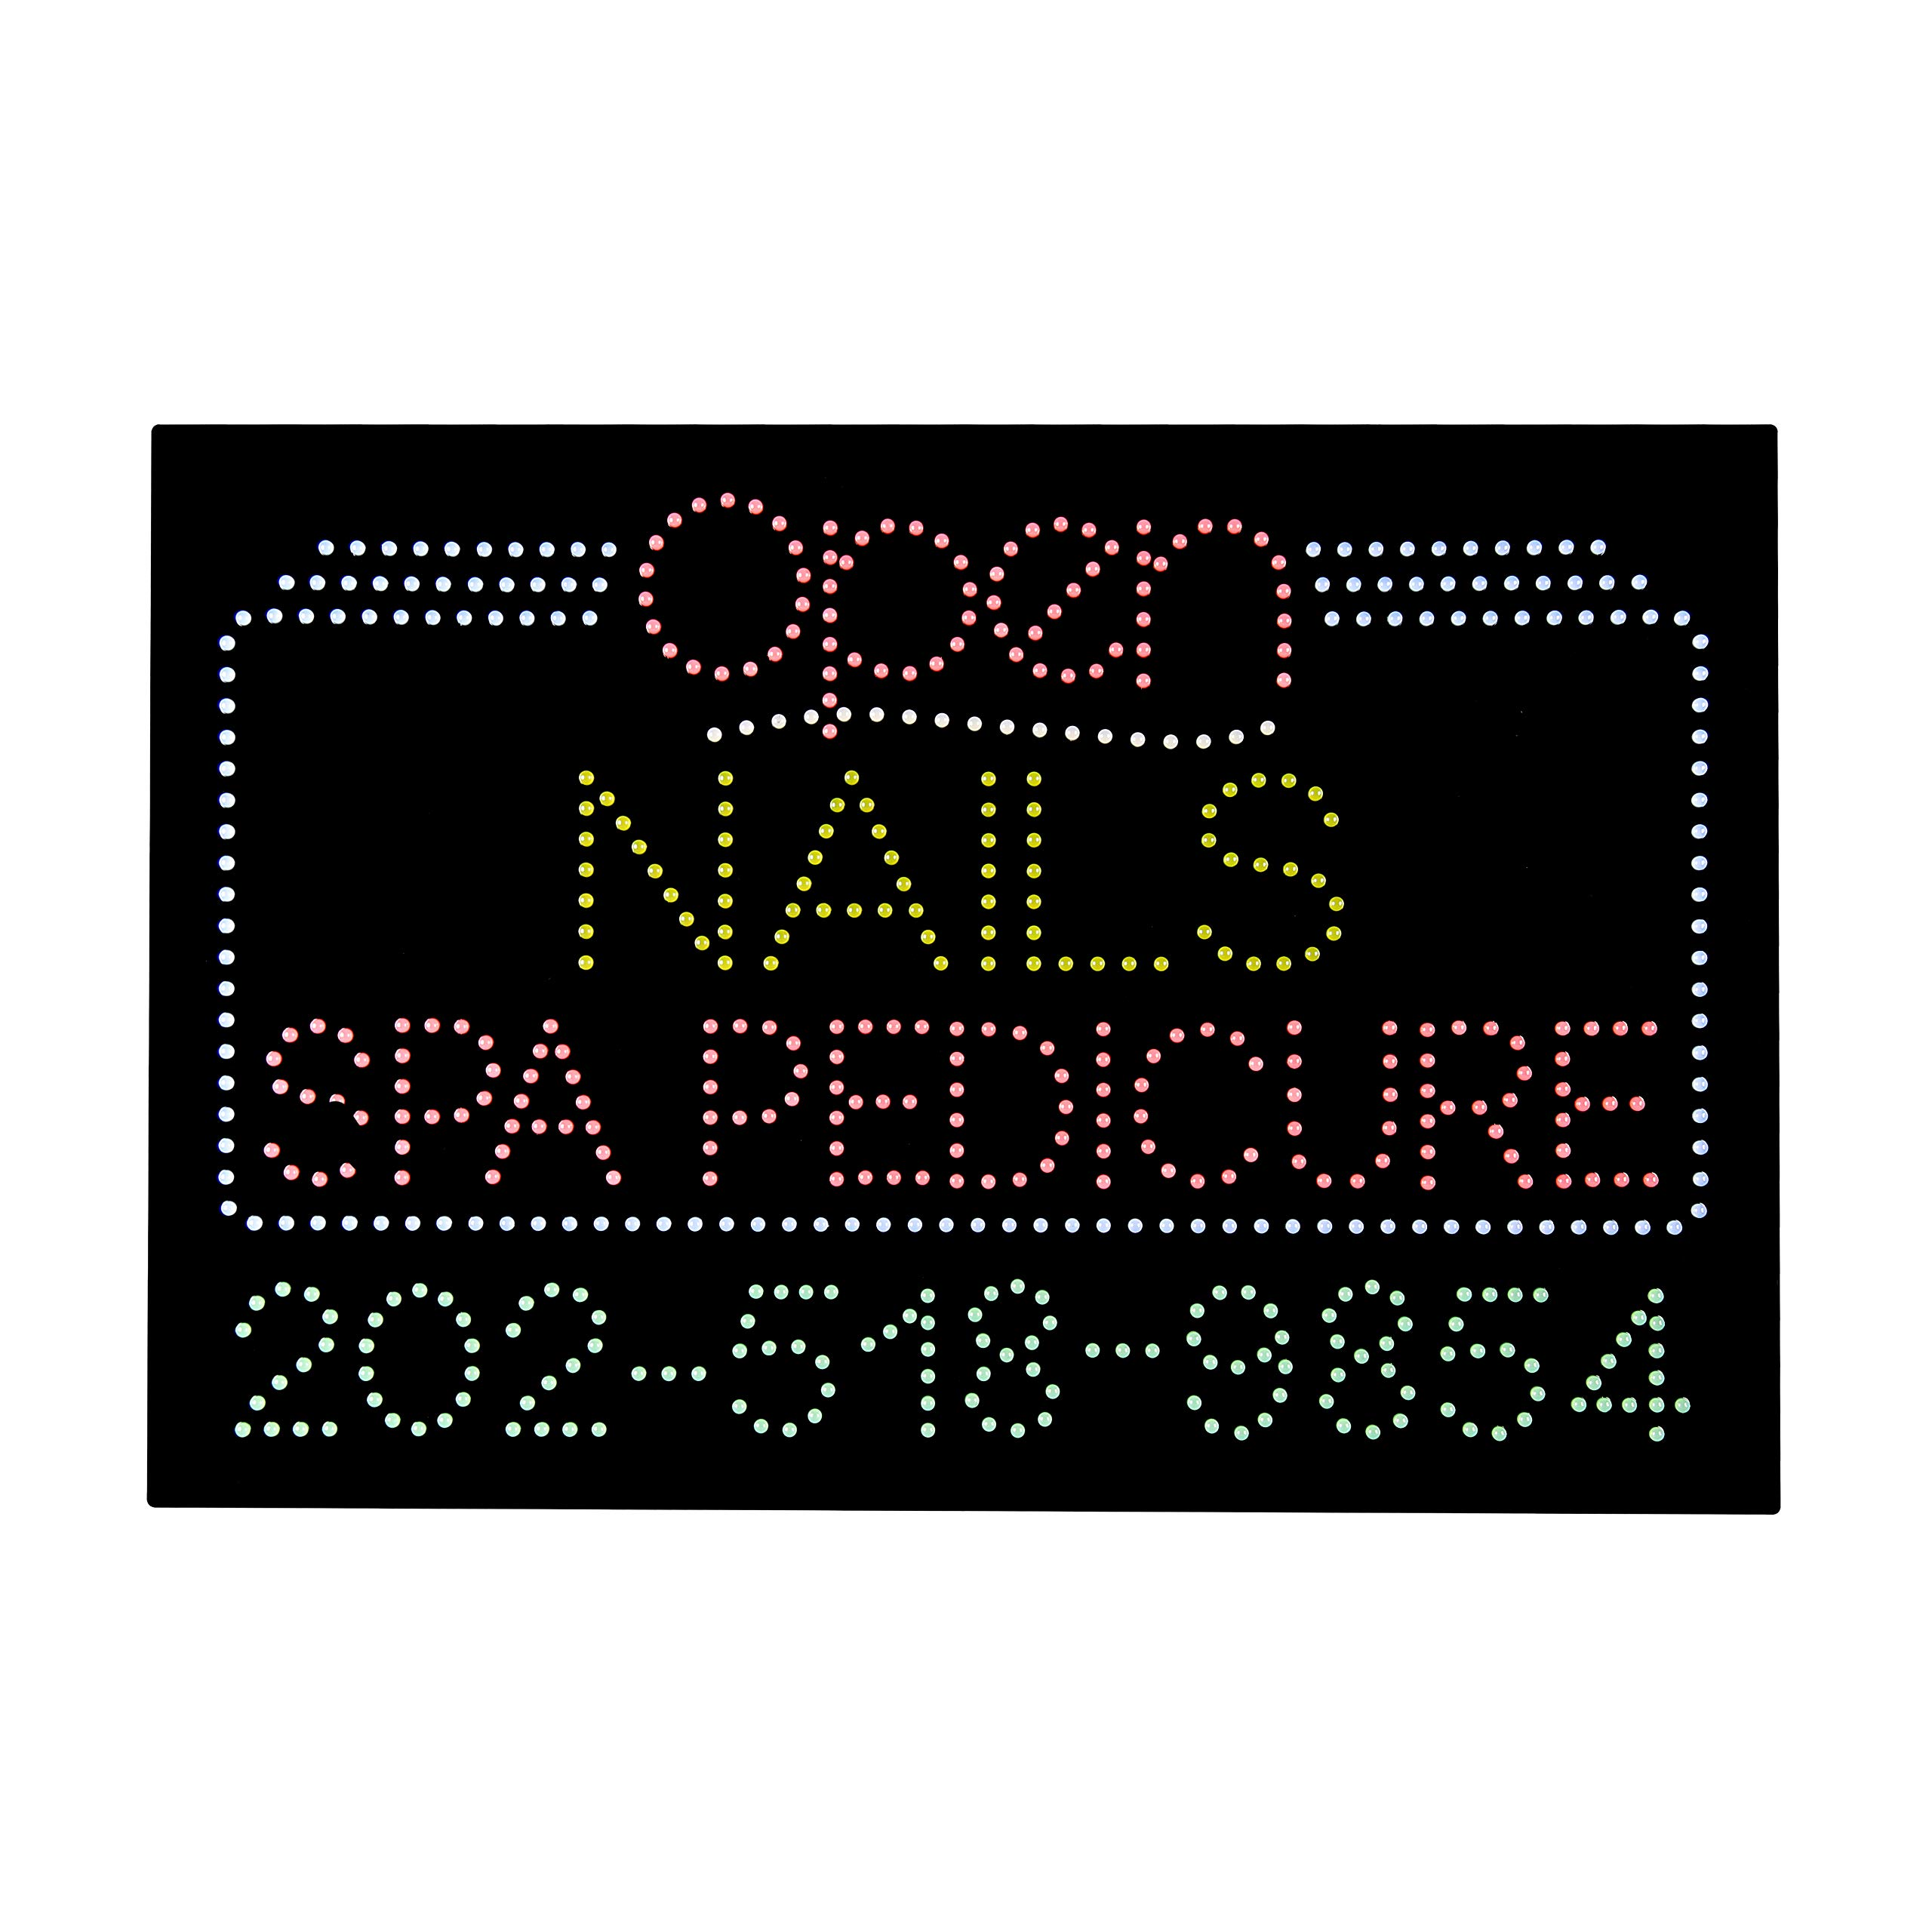 LED Nails Spa Pedicure Open Light Sign Super Bright Electric Advertising Message Display Board for Business Shop Store Window Bedroom 36 x 24 inches by HIDLY (Image #2)